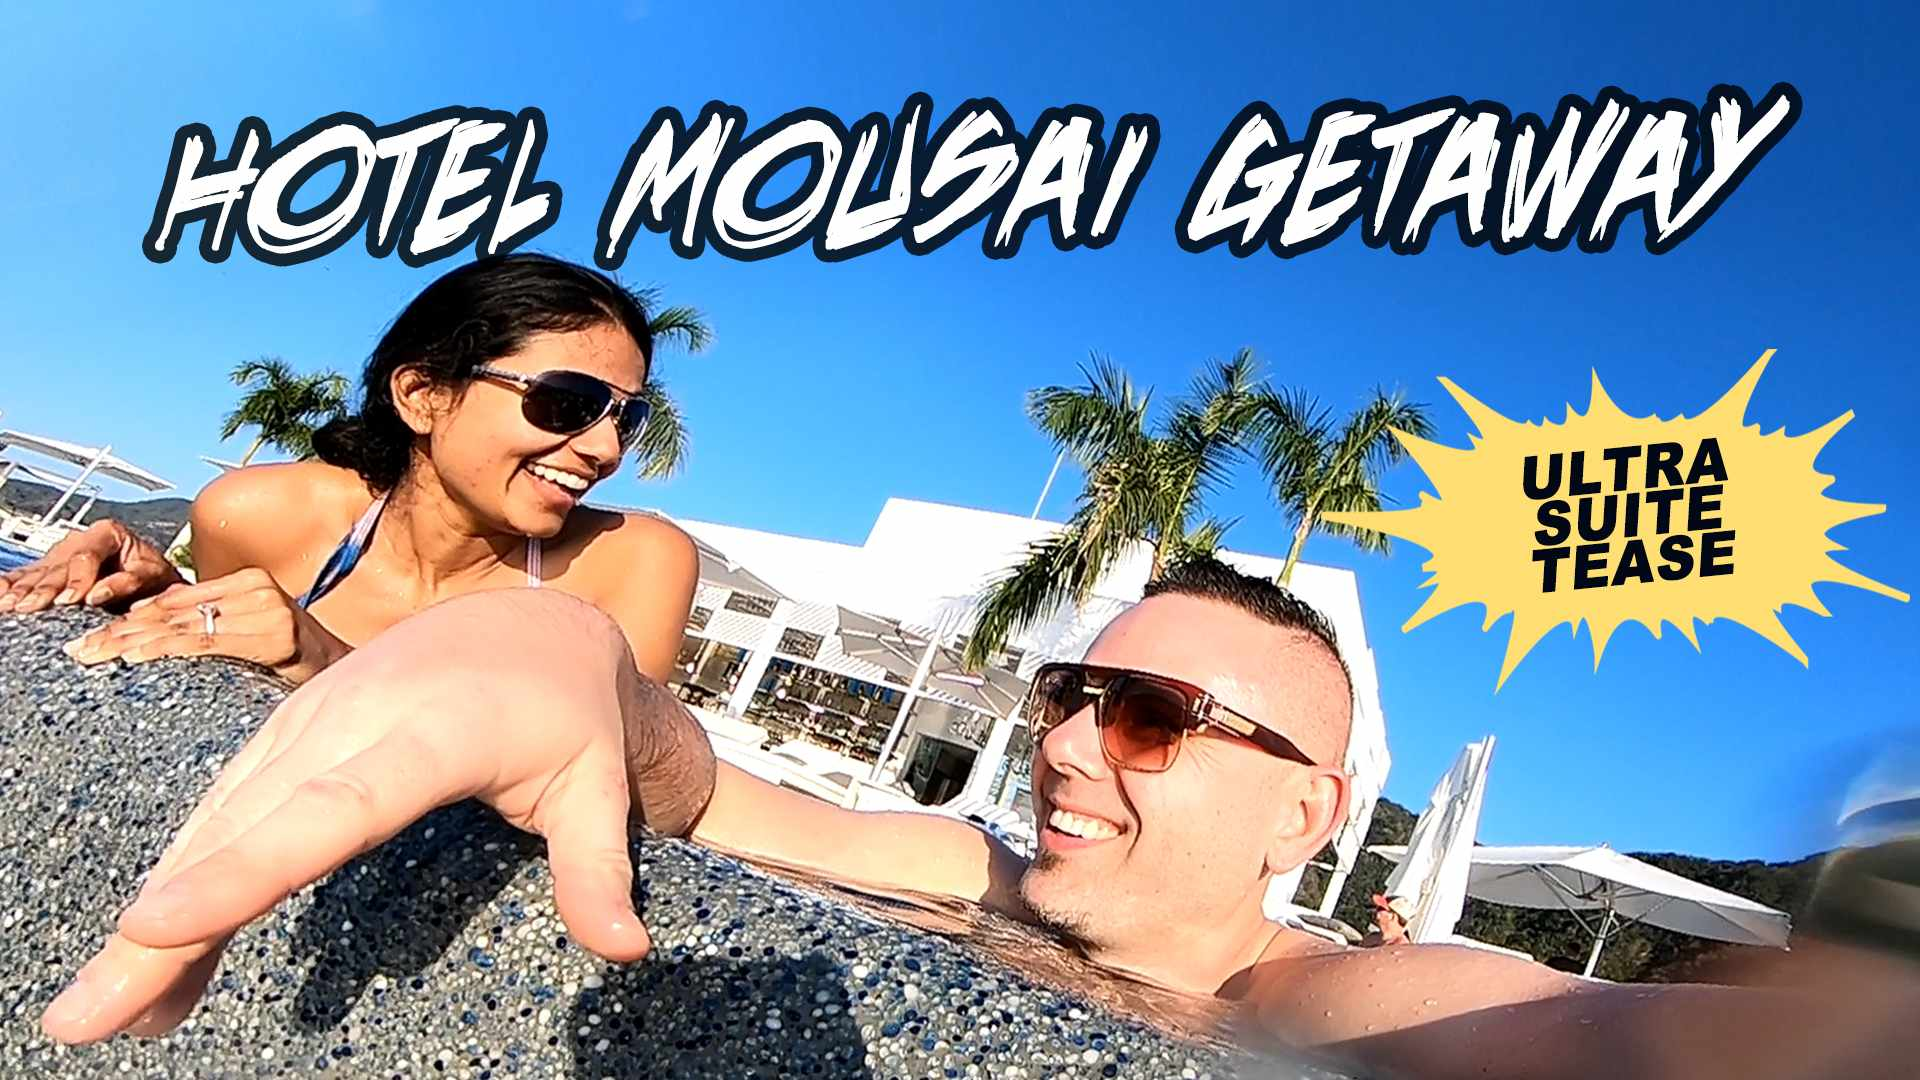 Our Stay at Hotel Mousai Adults Only Resort & Spa - The Adventure is Coming! Stay Tuned